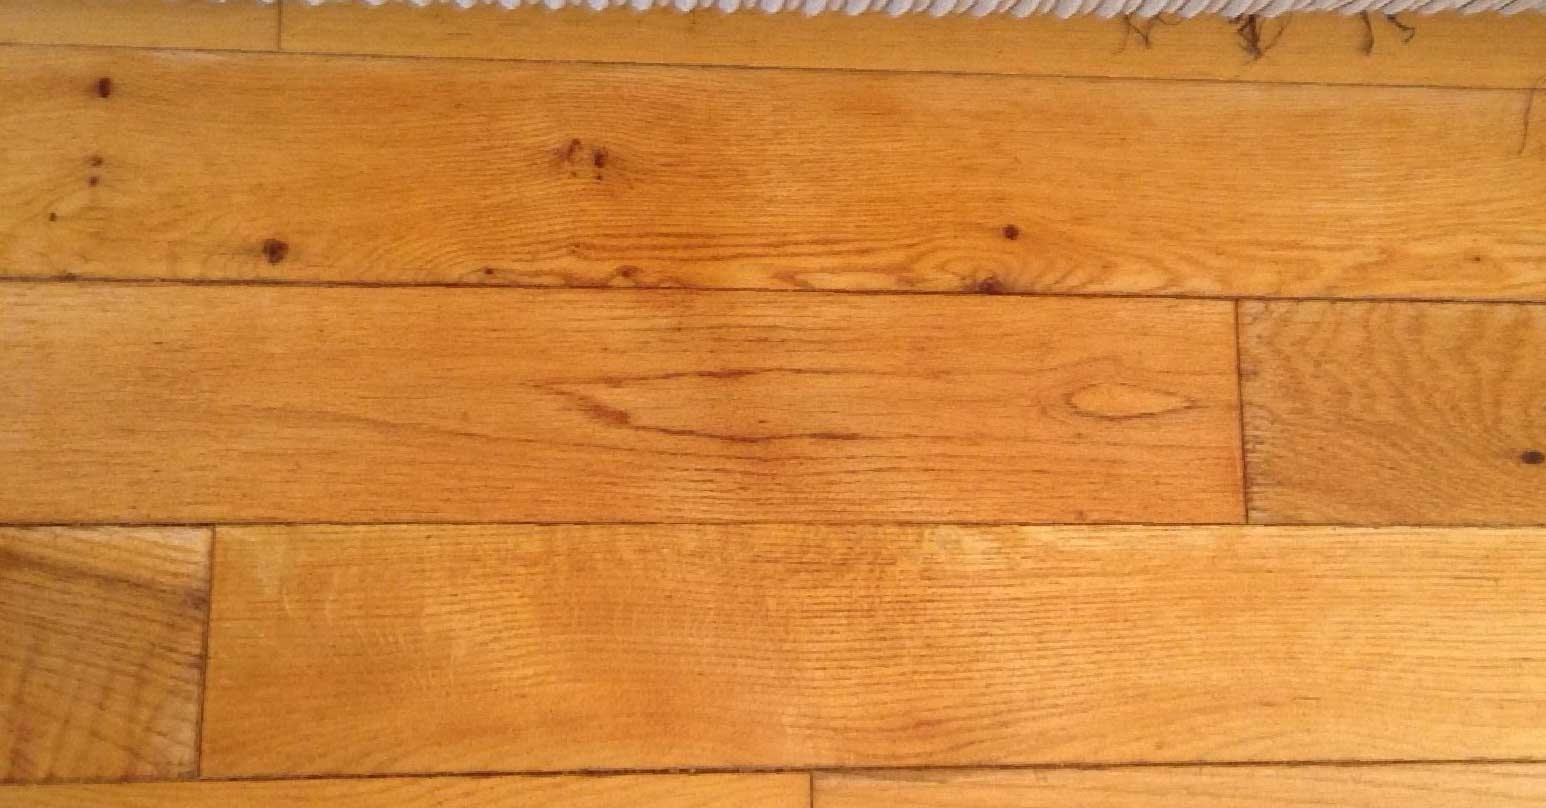 Repaired stain to solid wood floor